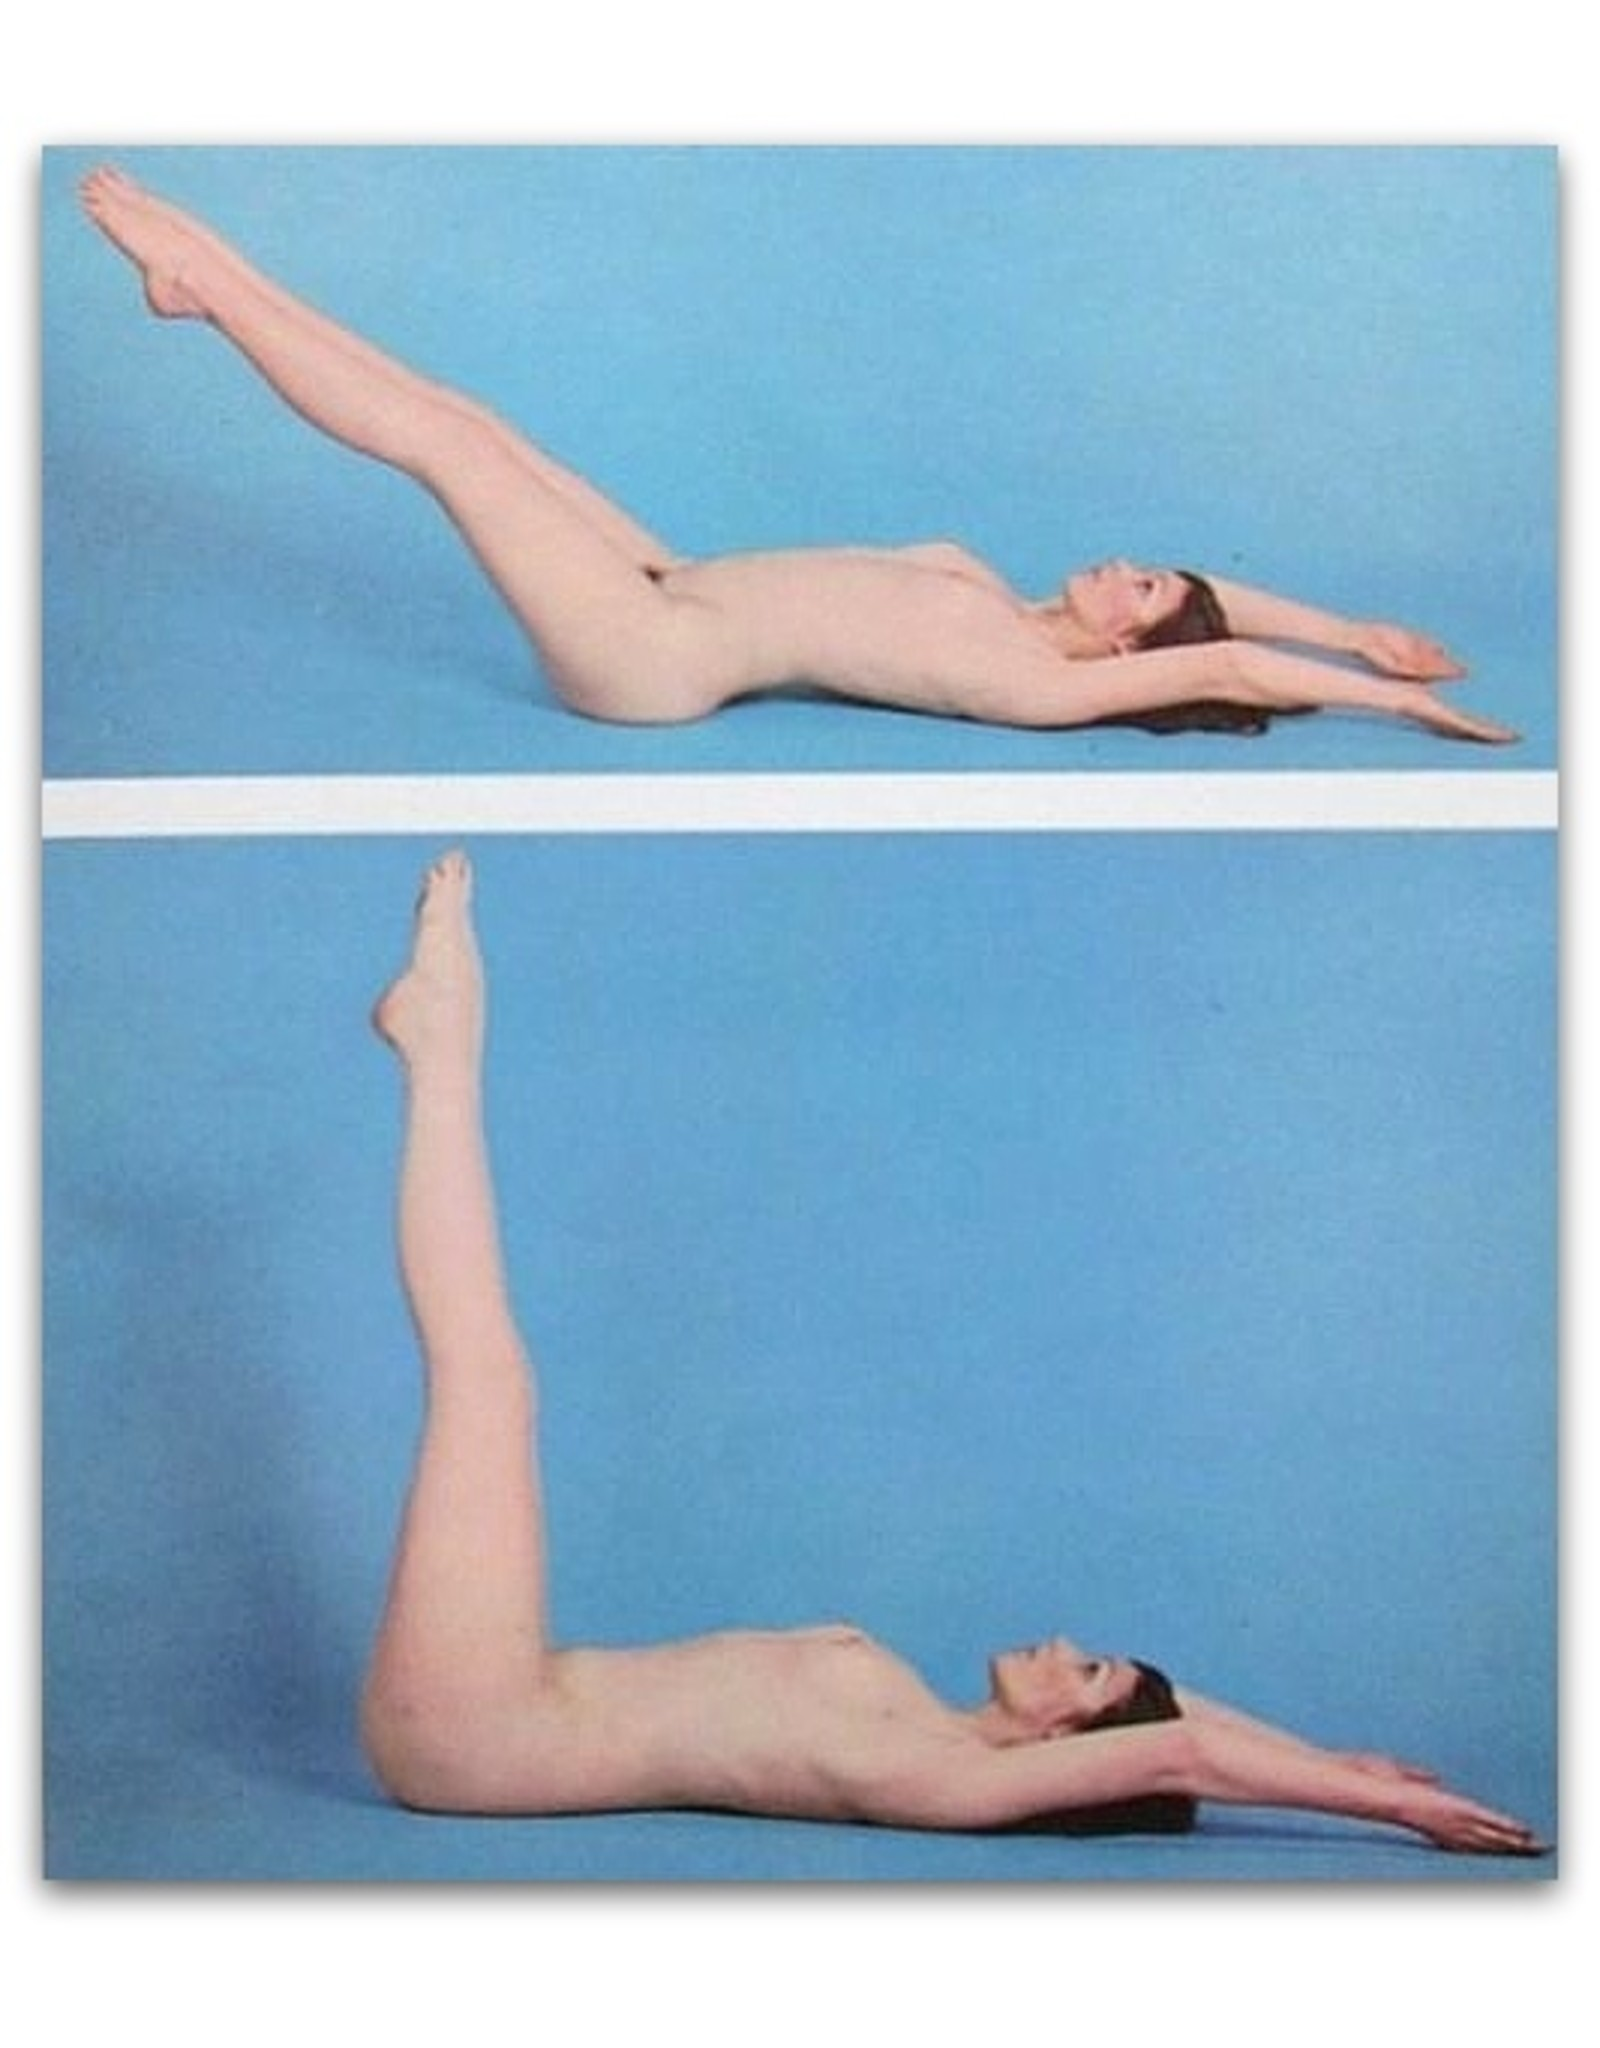 Malcolm Leigh - Naked Yoga - First Series of Asanas. Photography by John Adams